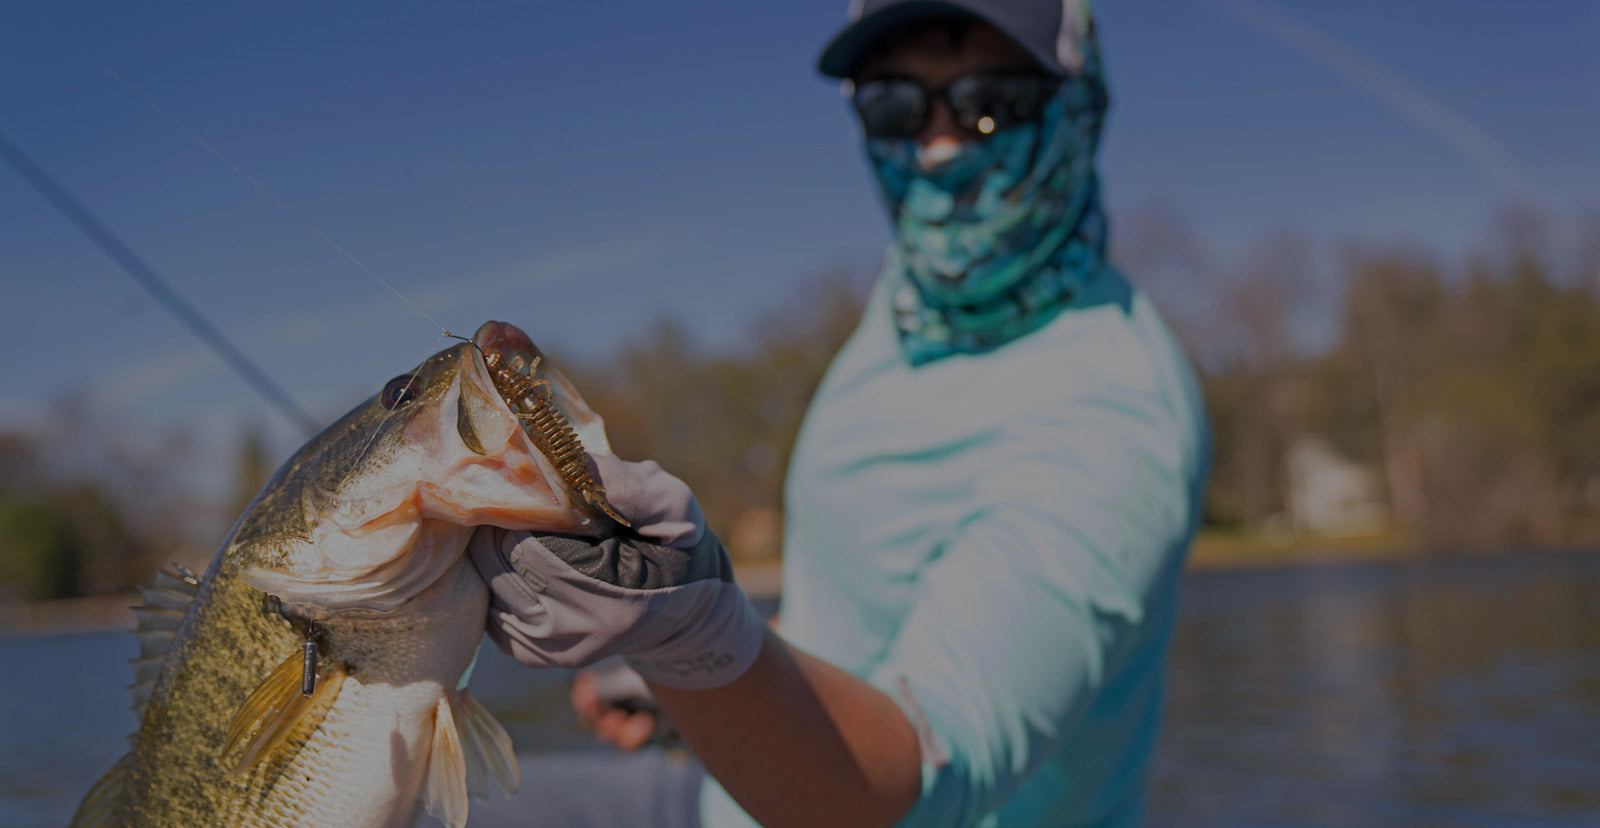 The Best Soft Plastic Baits and Tackle for The Best Price